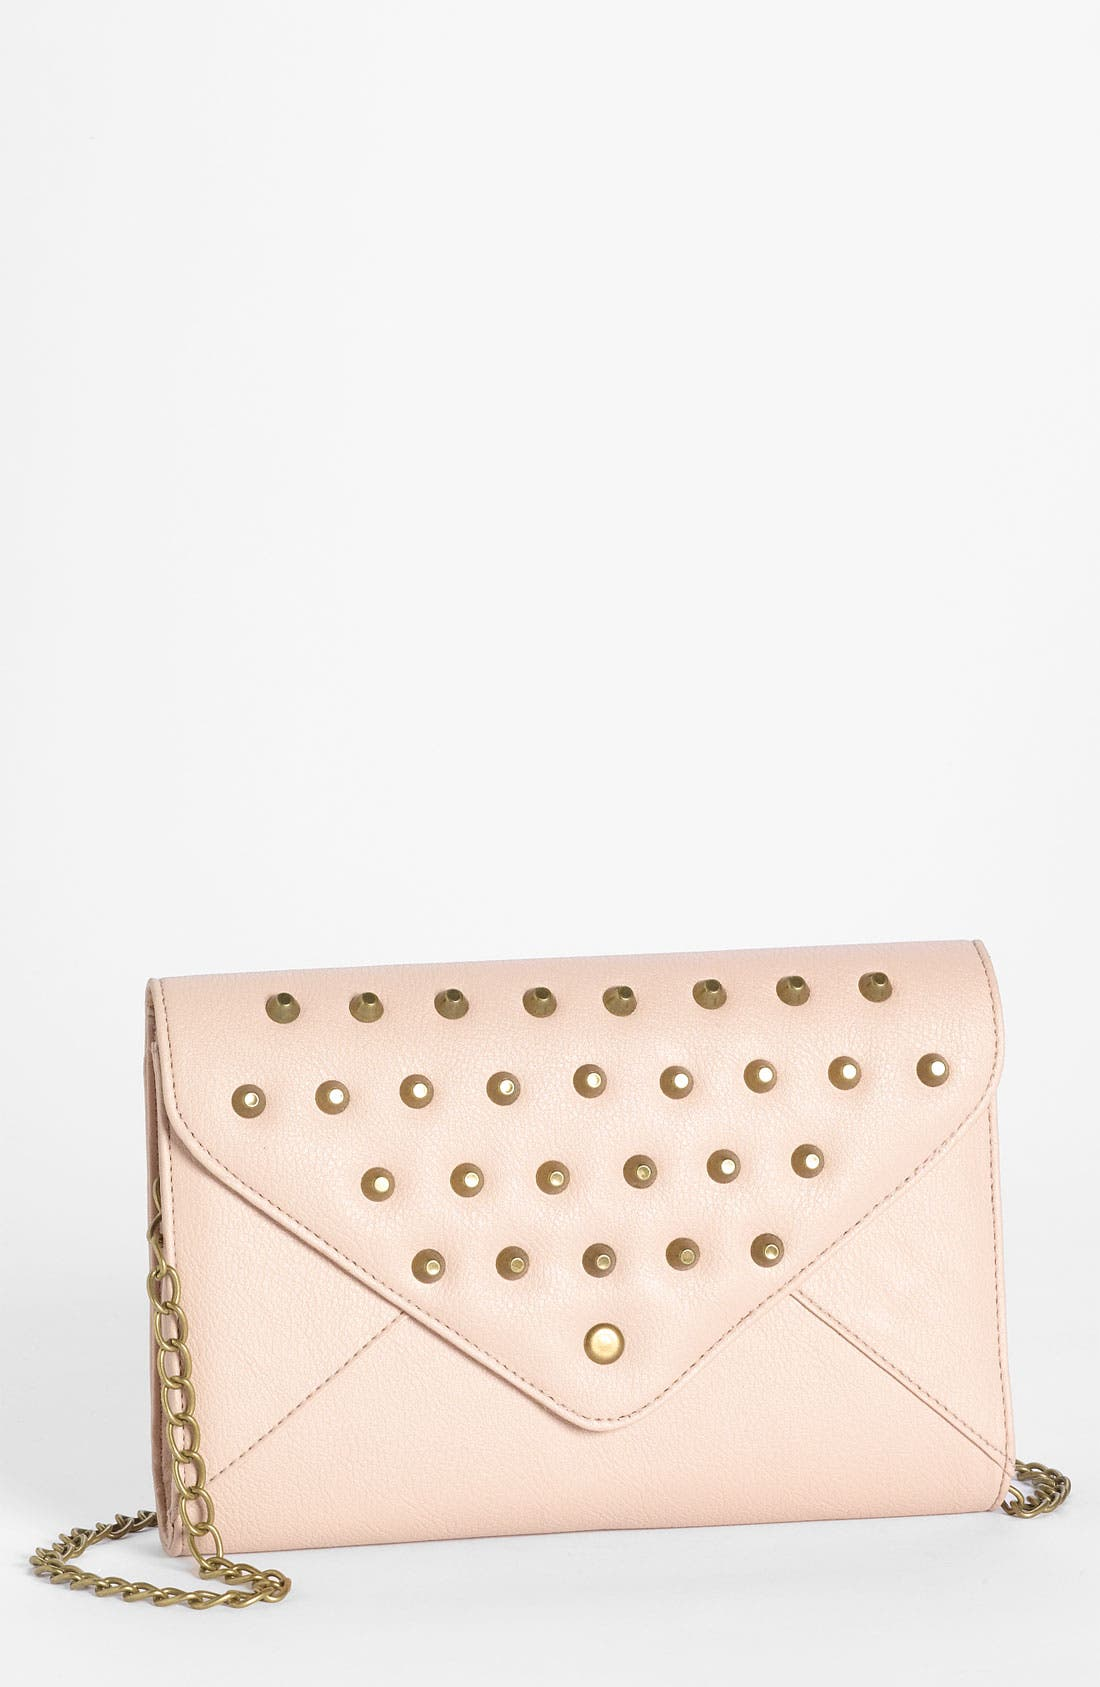 Main Image - OMG Studded Crossbody Clutch